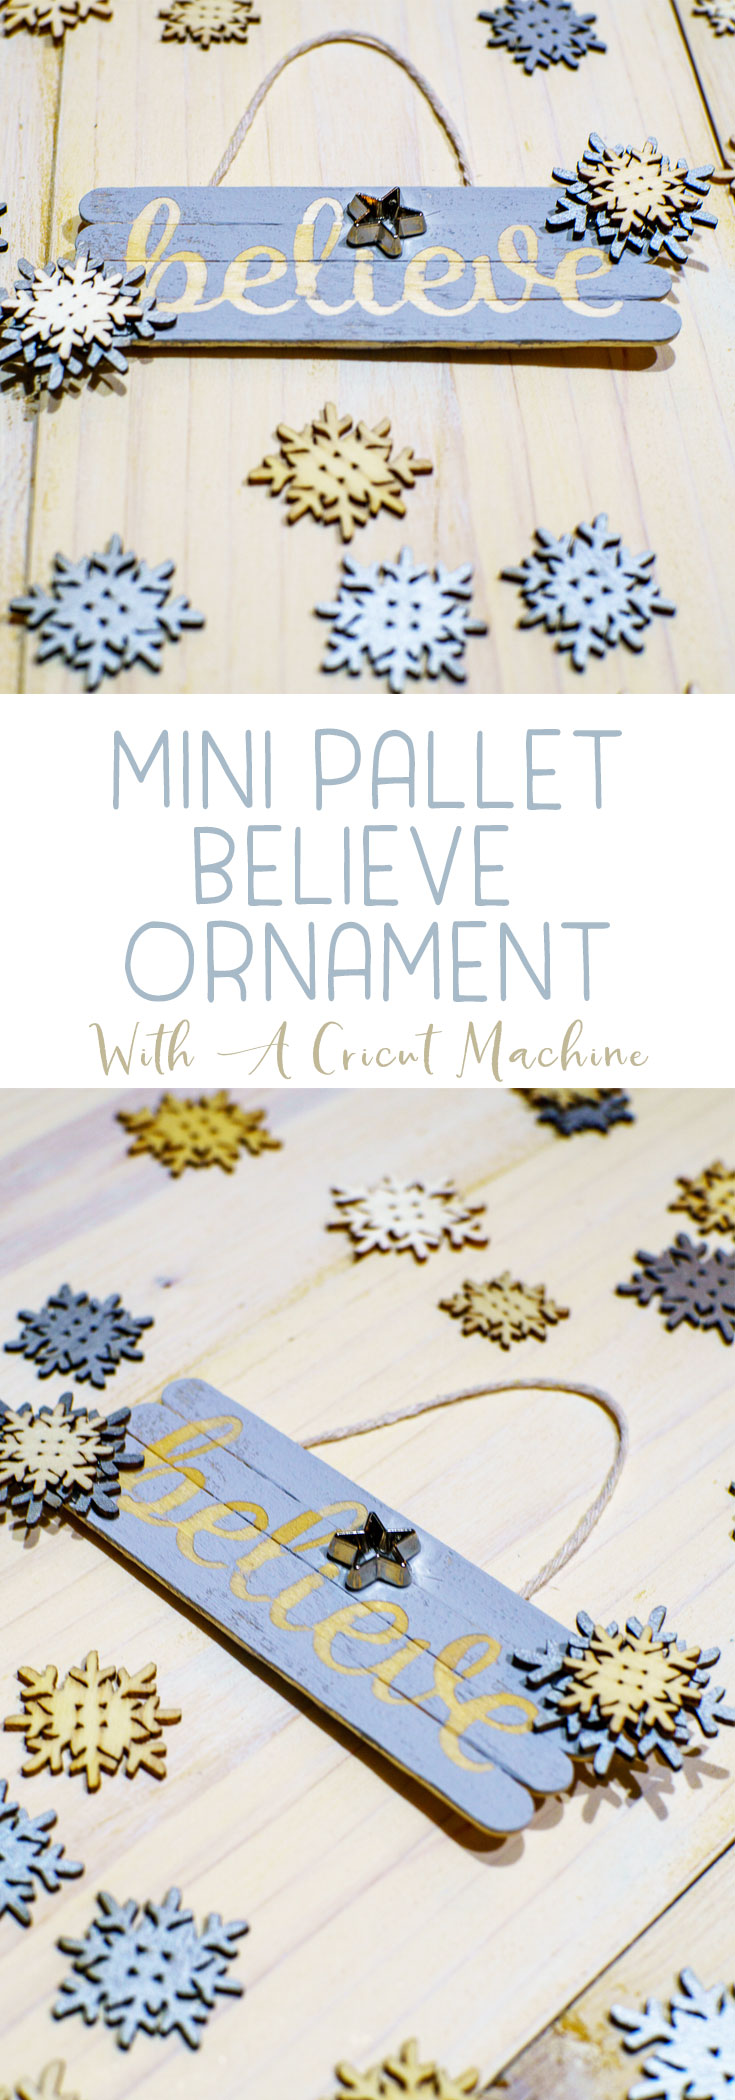 Craft a Believe Ornament that is easy to make with craft sticks and a Cricut Explore Air 2. You'll be amazed how quick they are to make! #cricut #ChristmasOrnament #handmade #FarmhouseChristmas #Believe  via @mrsmajorhoff